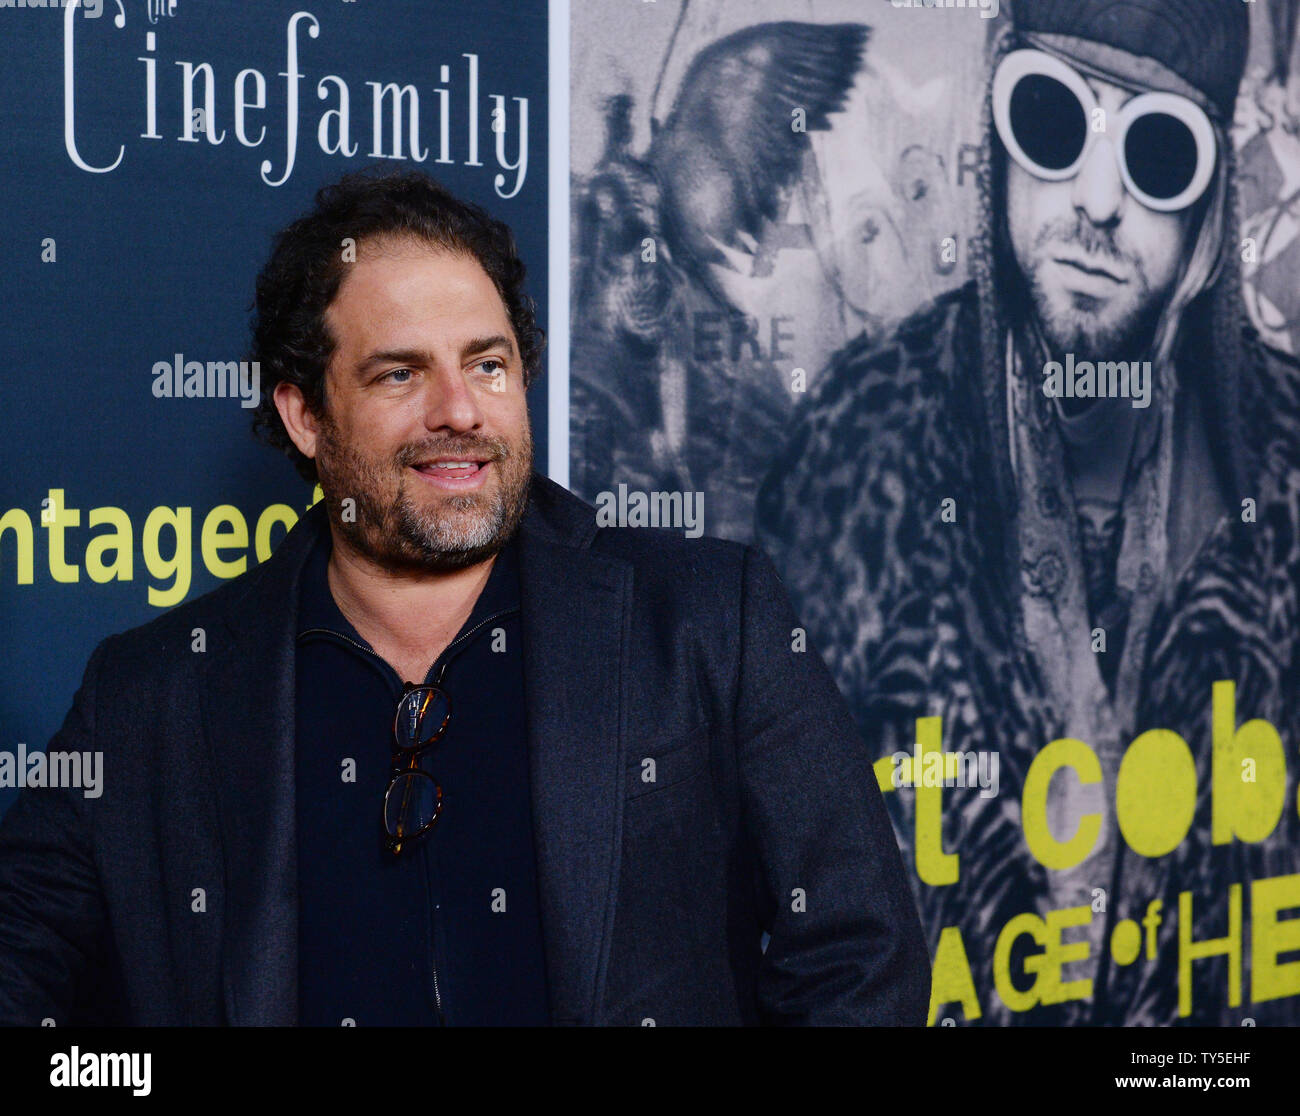 Grunge Band Stock Photos & Grunge Band Stock Images - Alamy